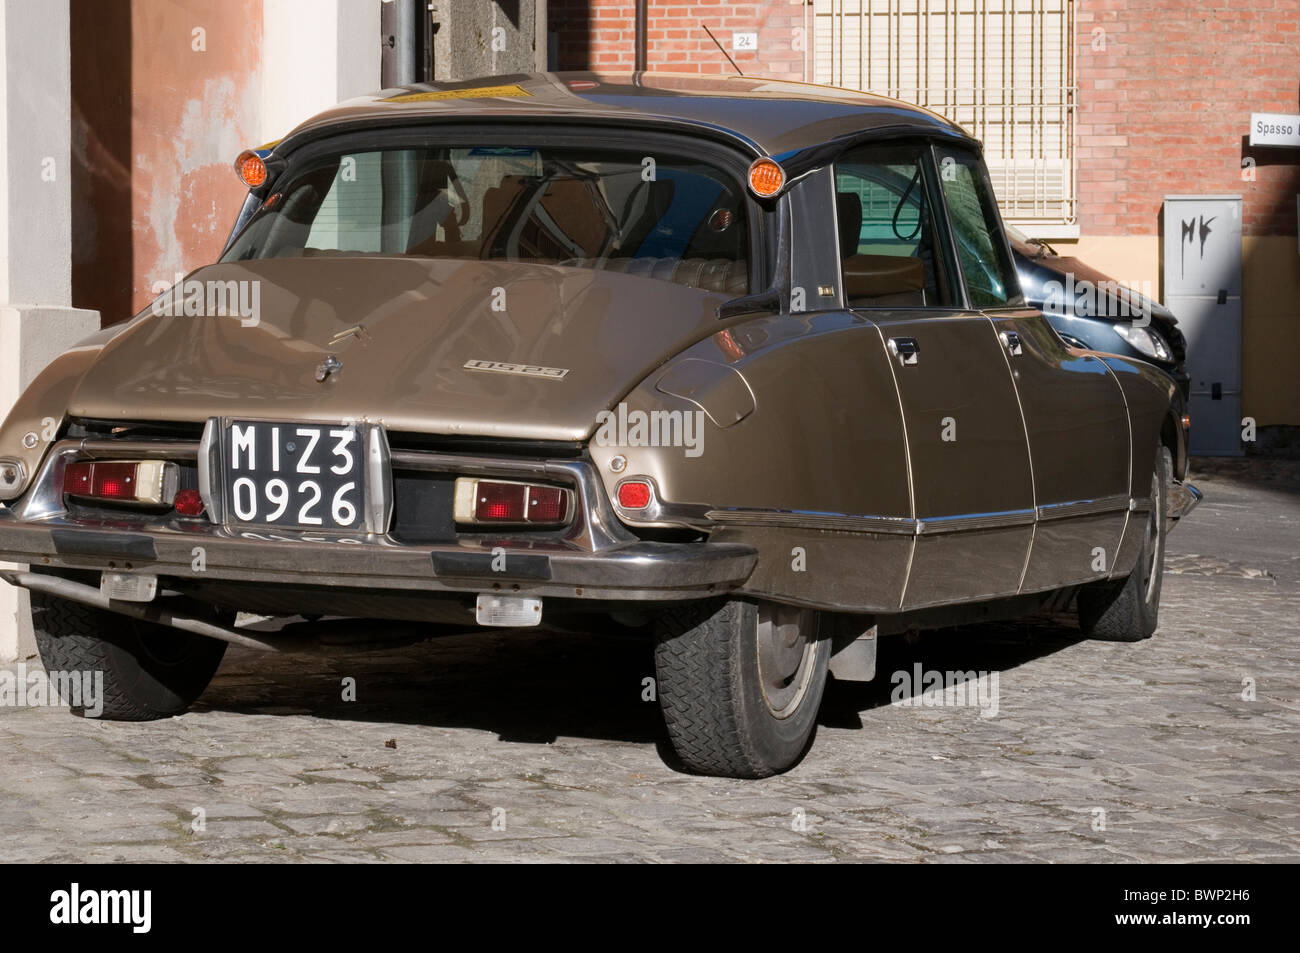 citreon ds classic french car cars style styling styled france retro stylish modern deco art hydrogas suspension - Stock Image